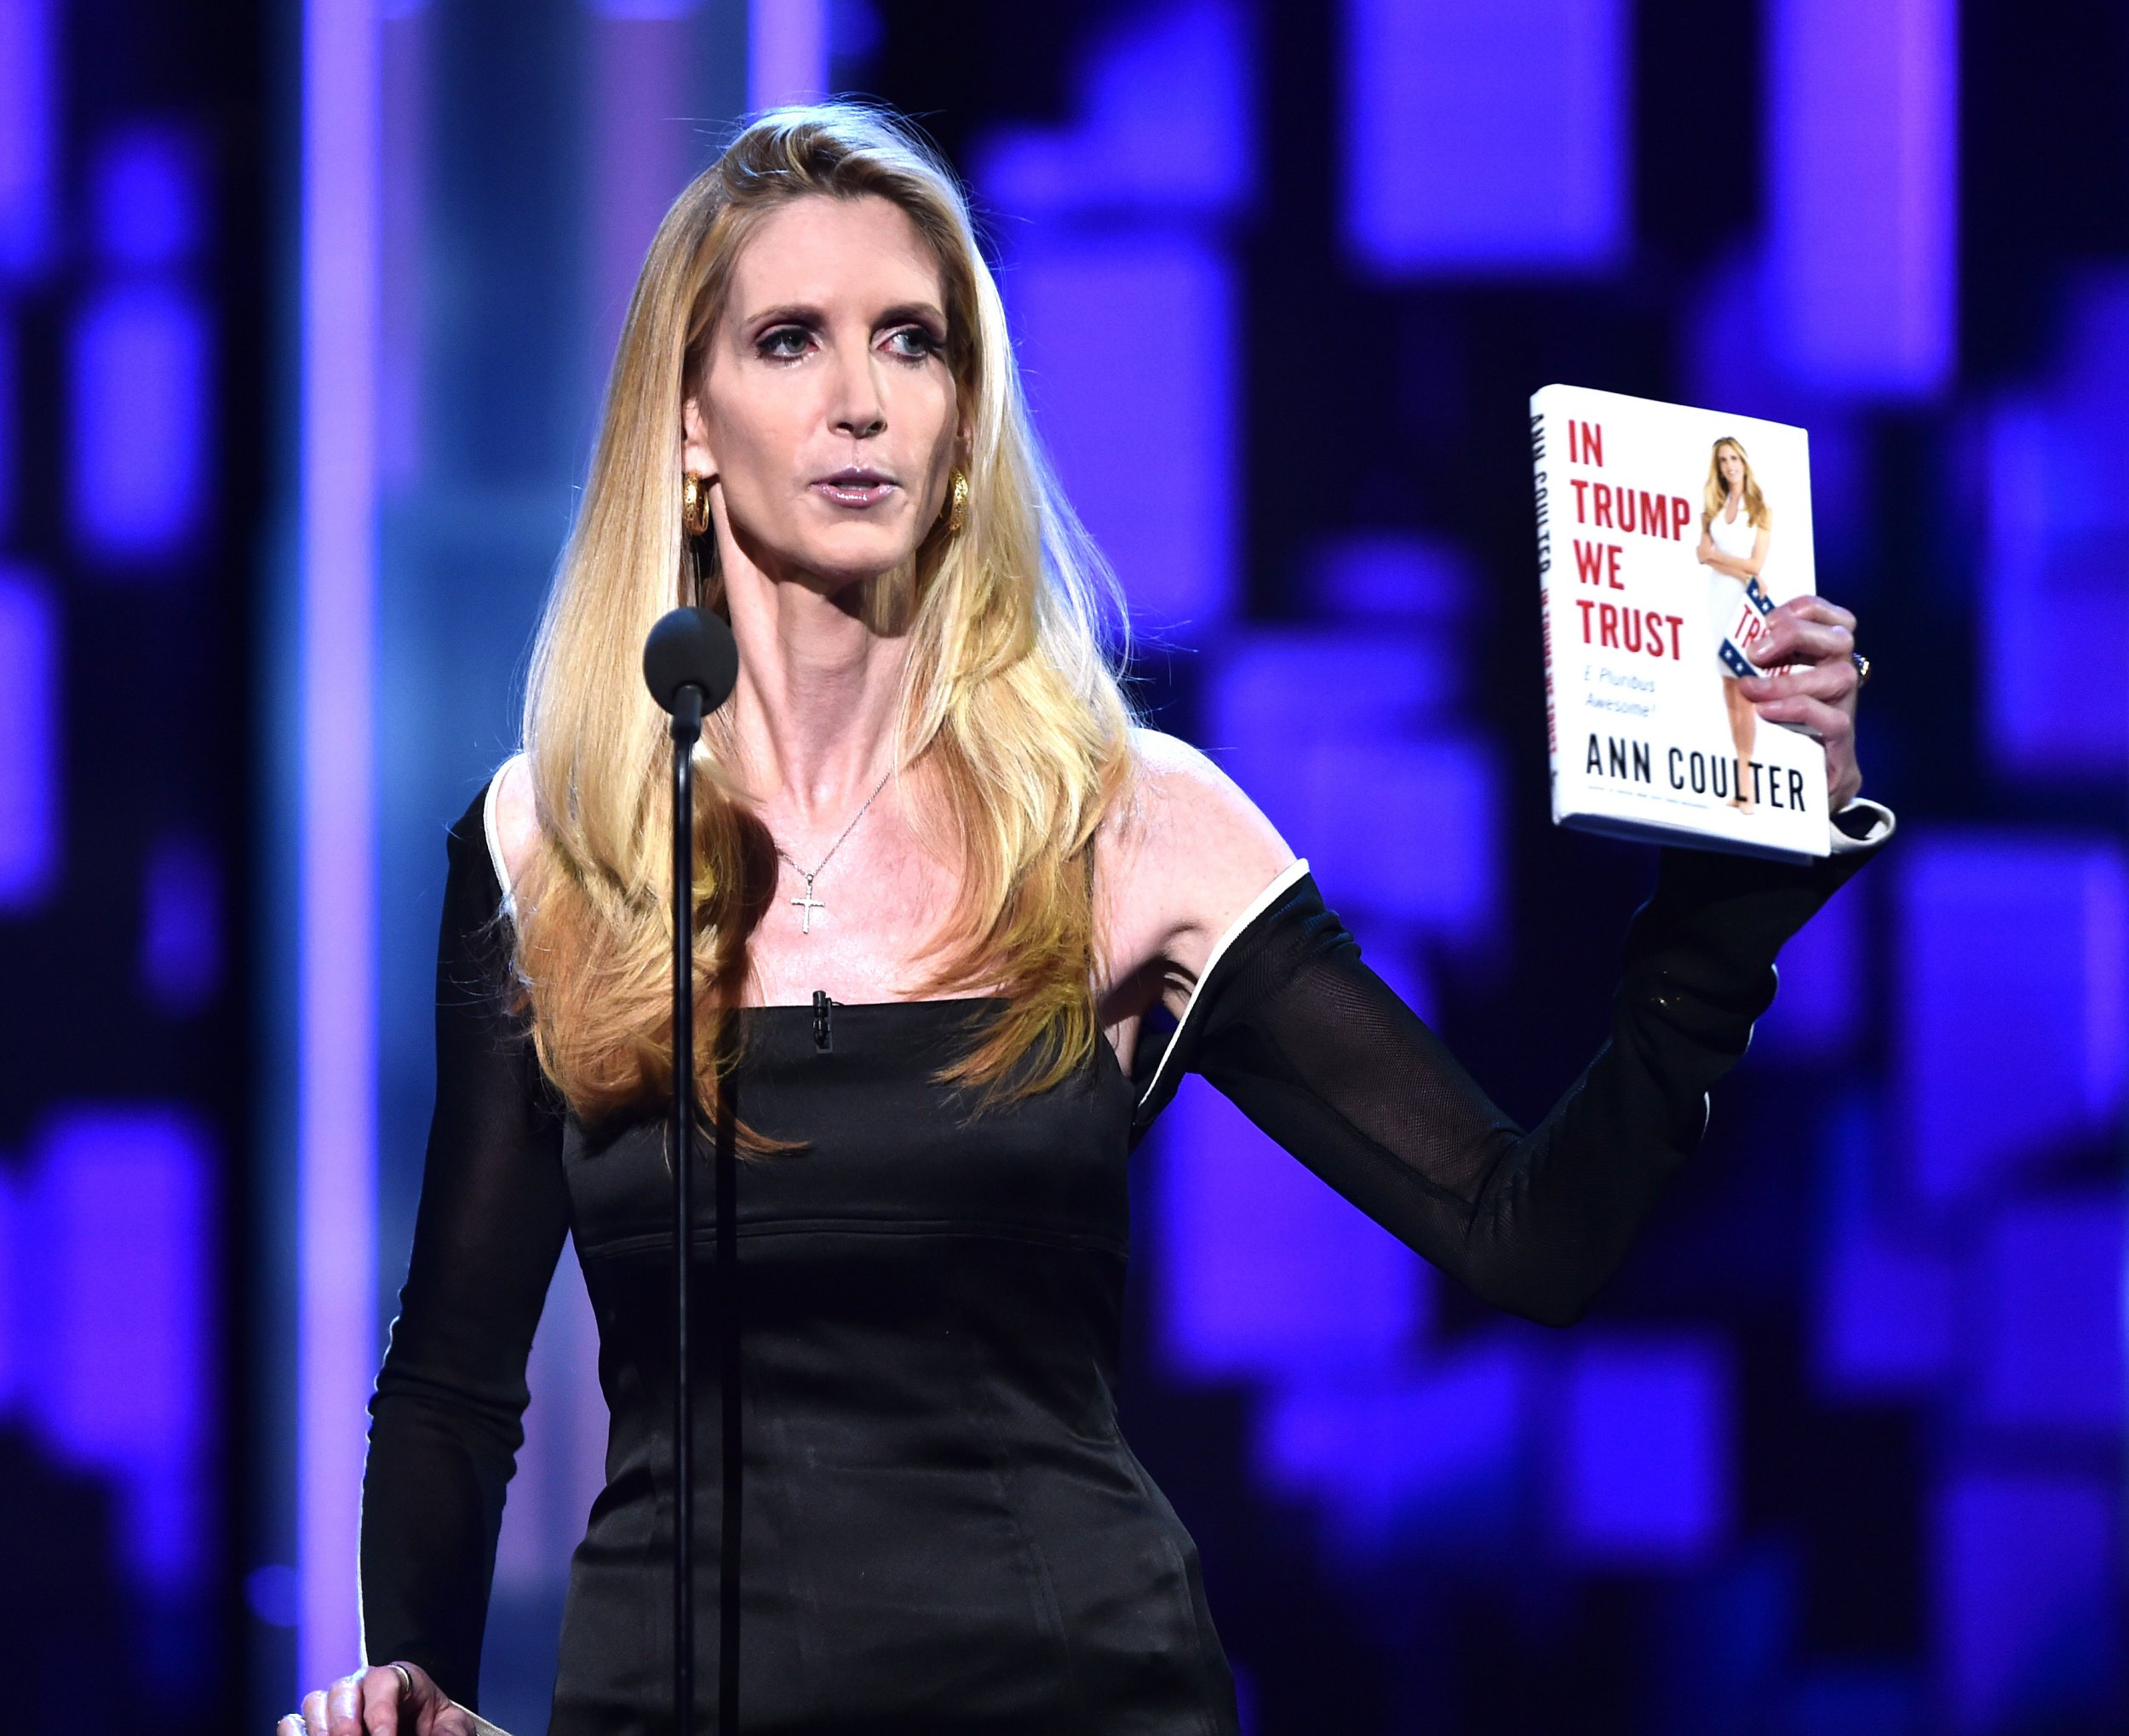 Ann Coulter, Donald Trump, Pee Tape, Russia Investigation, Robert Mueller